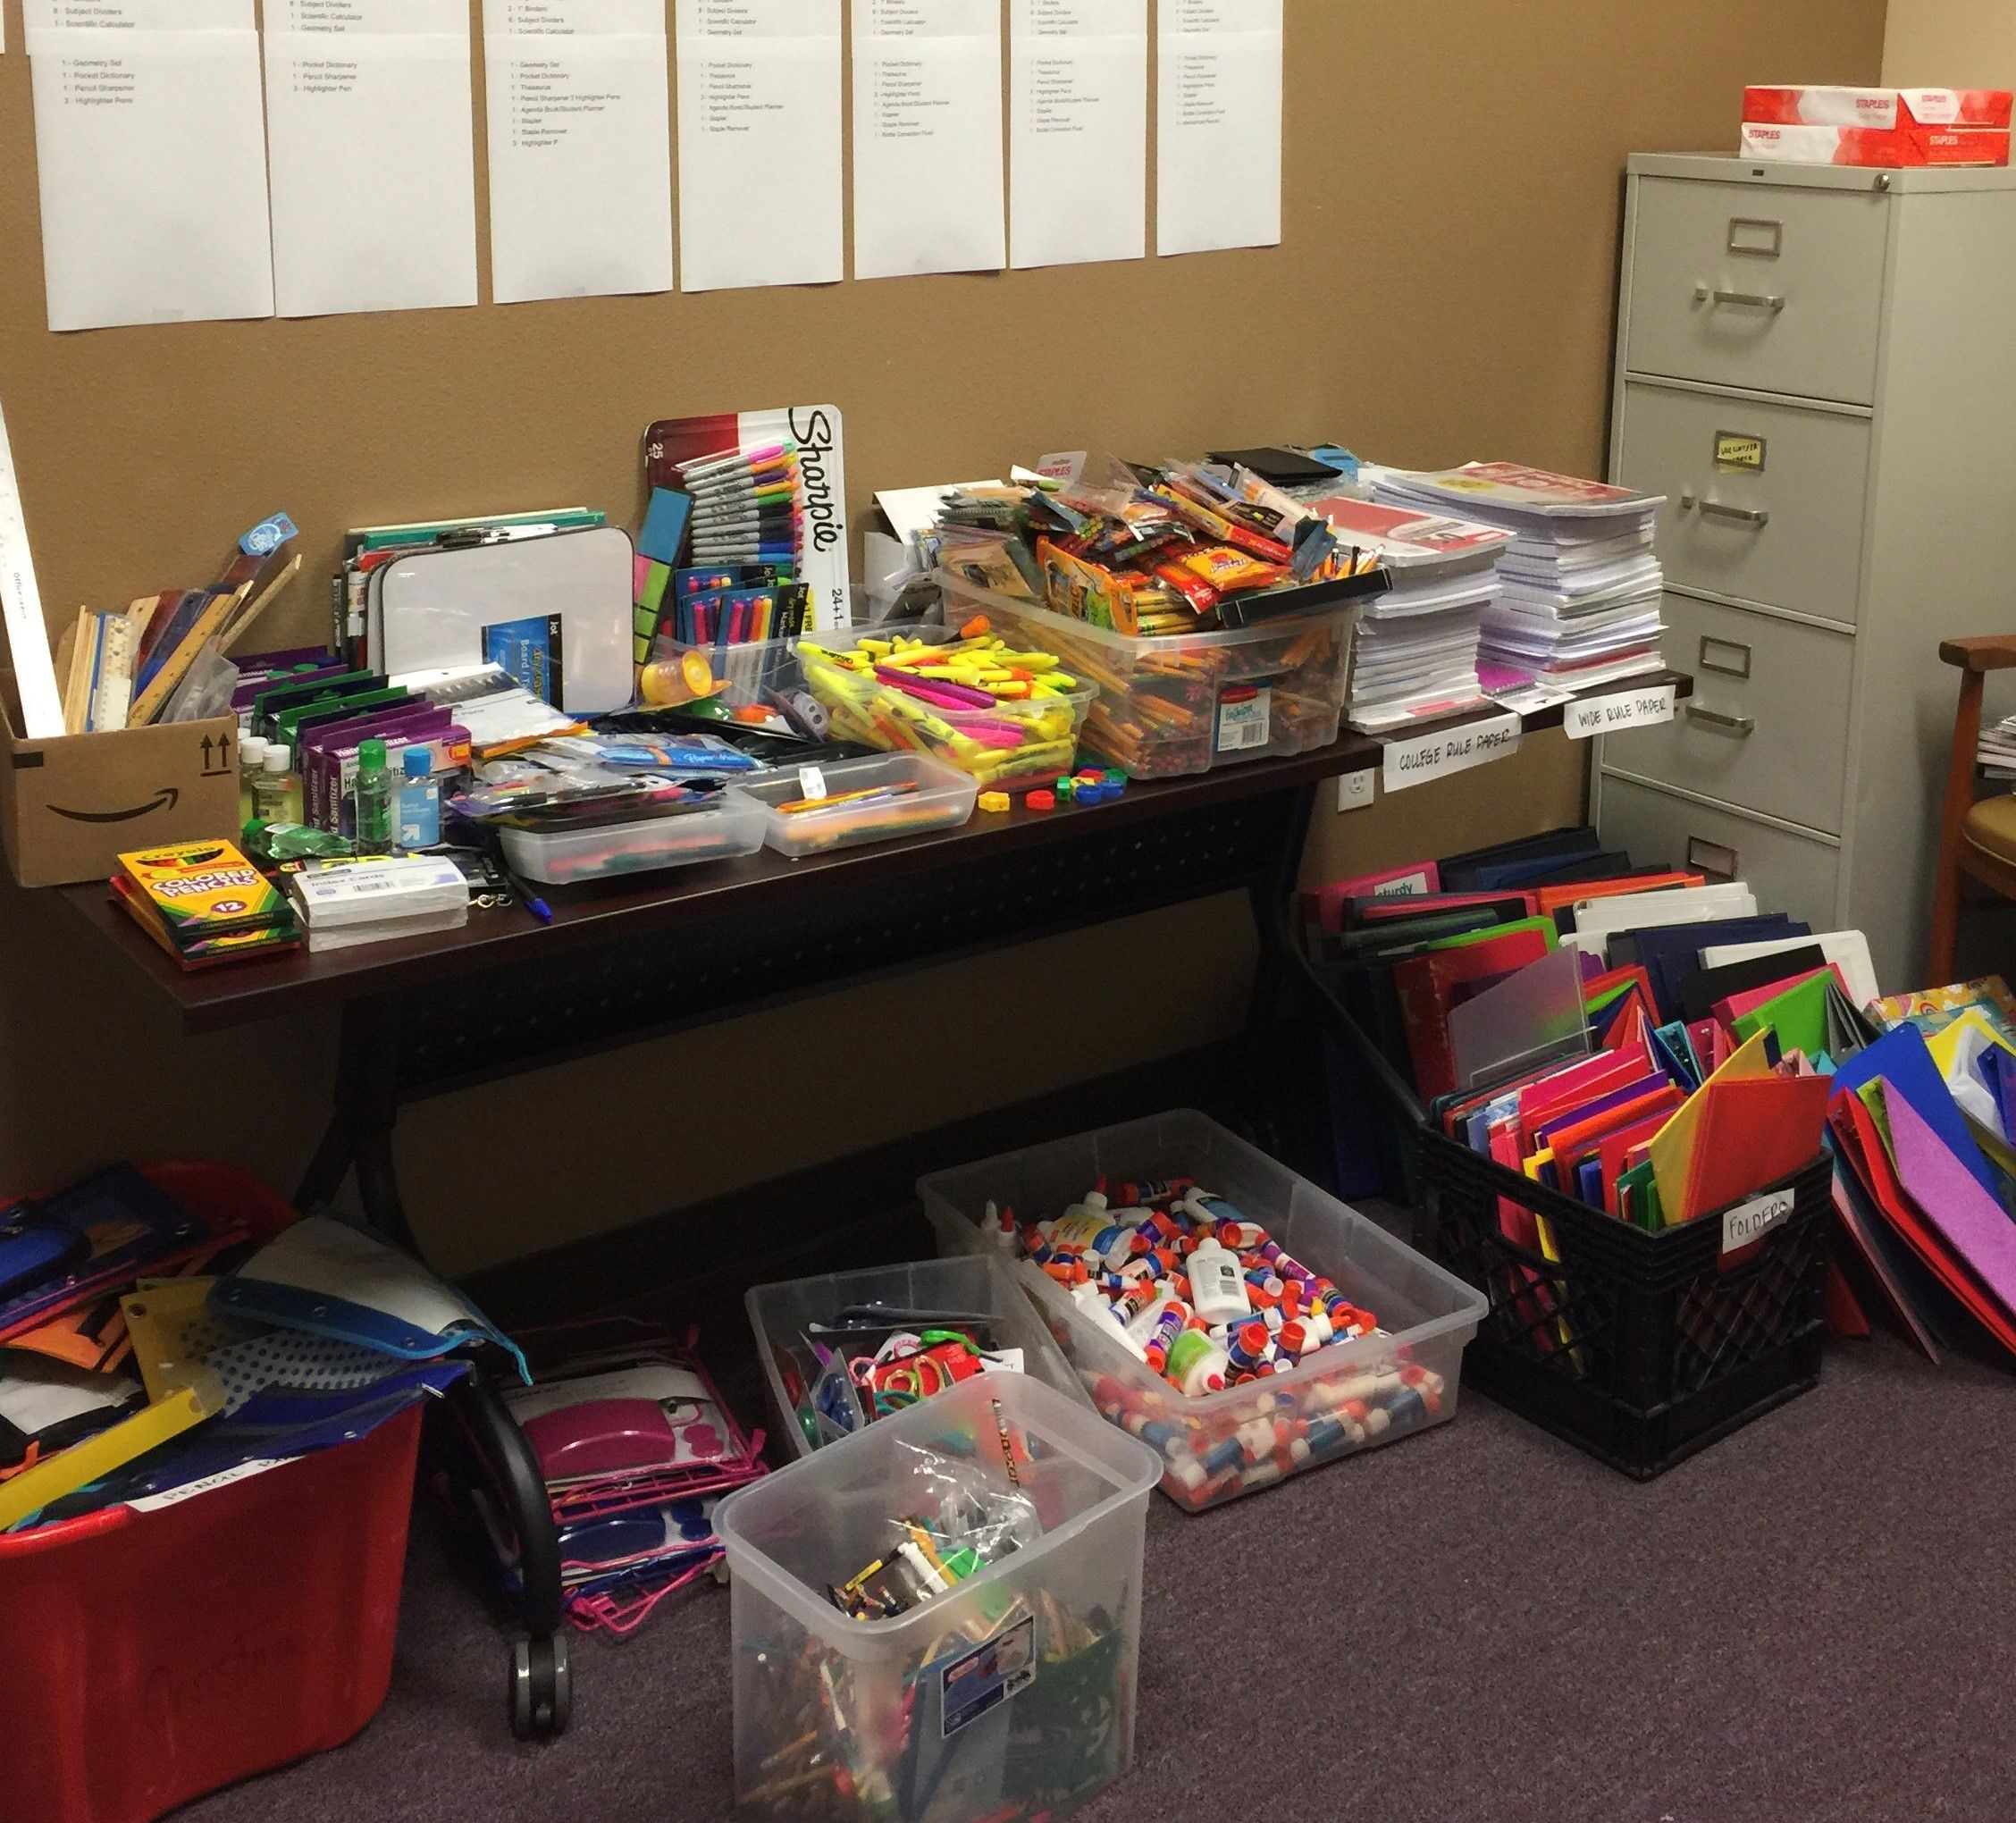 Many thanks to all for supporting our Back to School Drive!